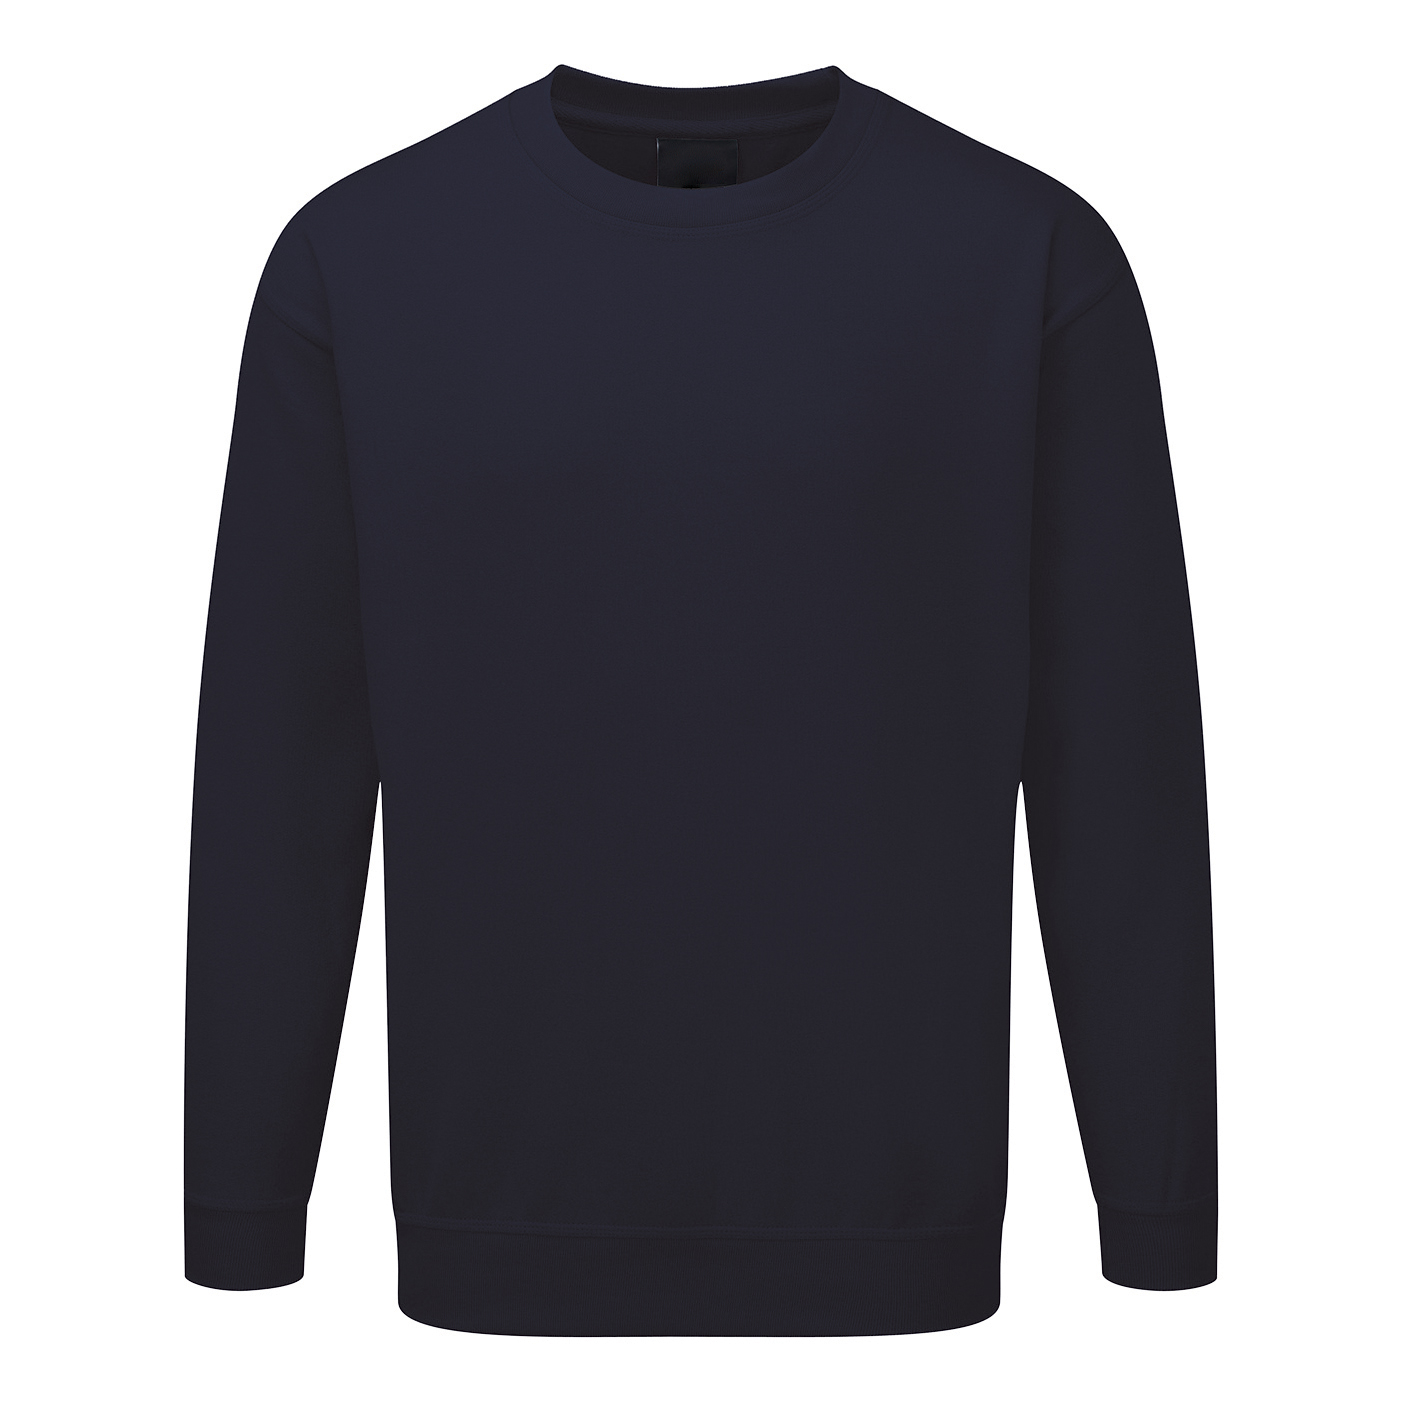 Sweatshirts / Jumpers / Hoodies Click Workwear Sweatshirt Polycotton 300gsm Large Navy Blue Ref CLPCSNL *1-3 Days Lead Time*